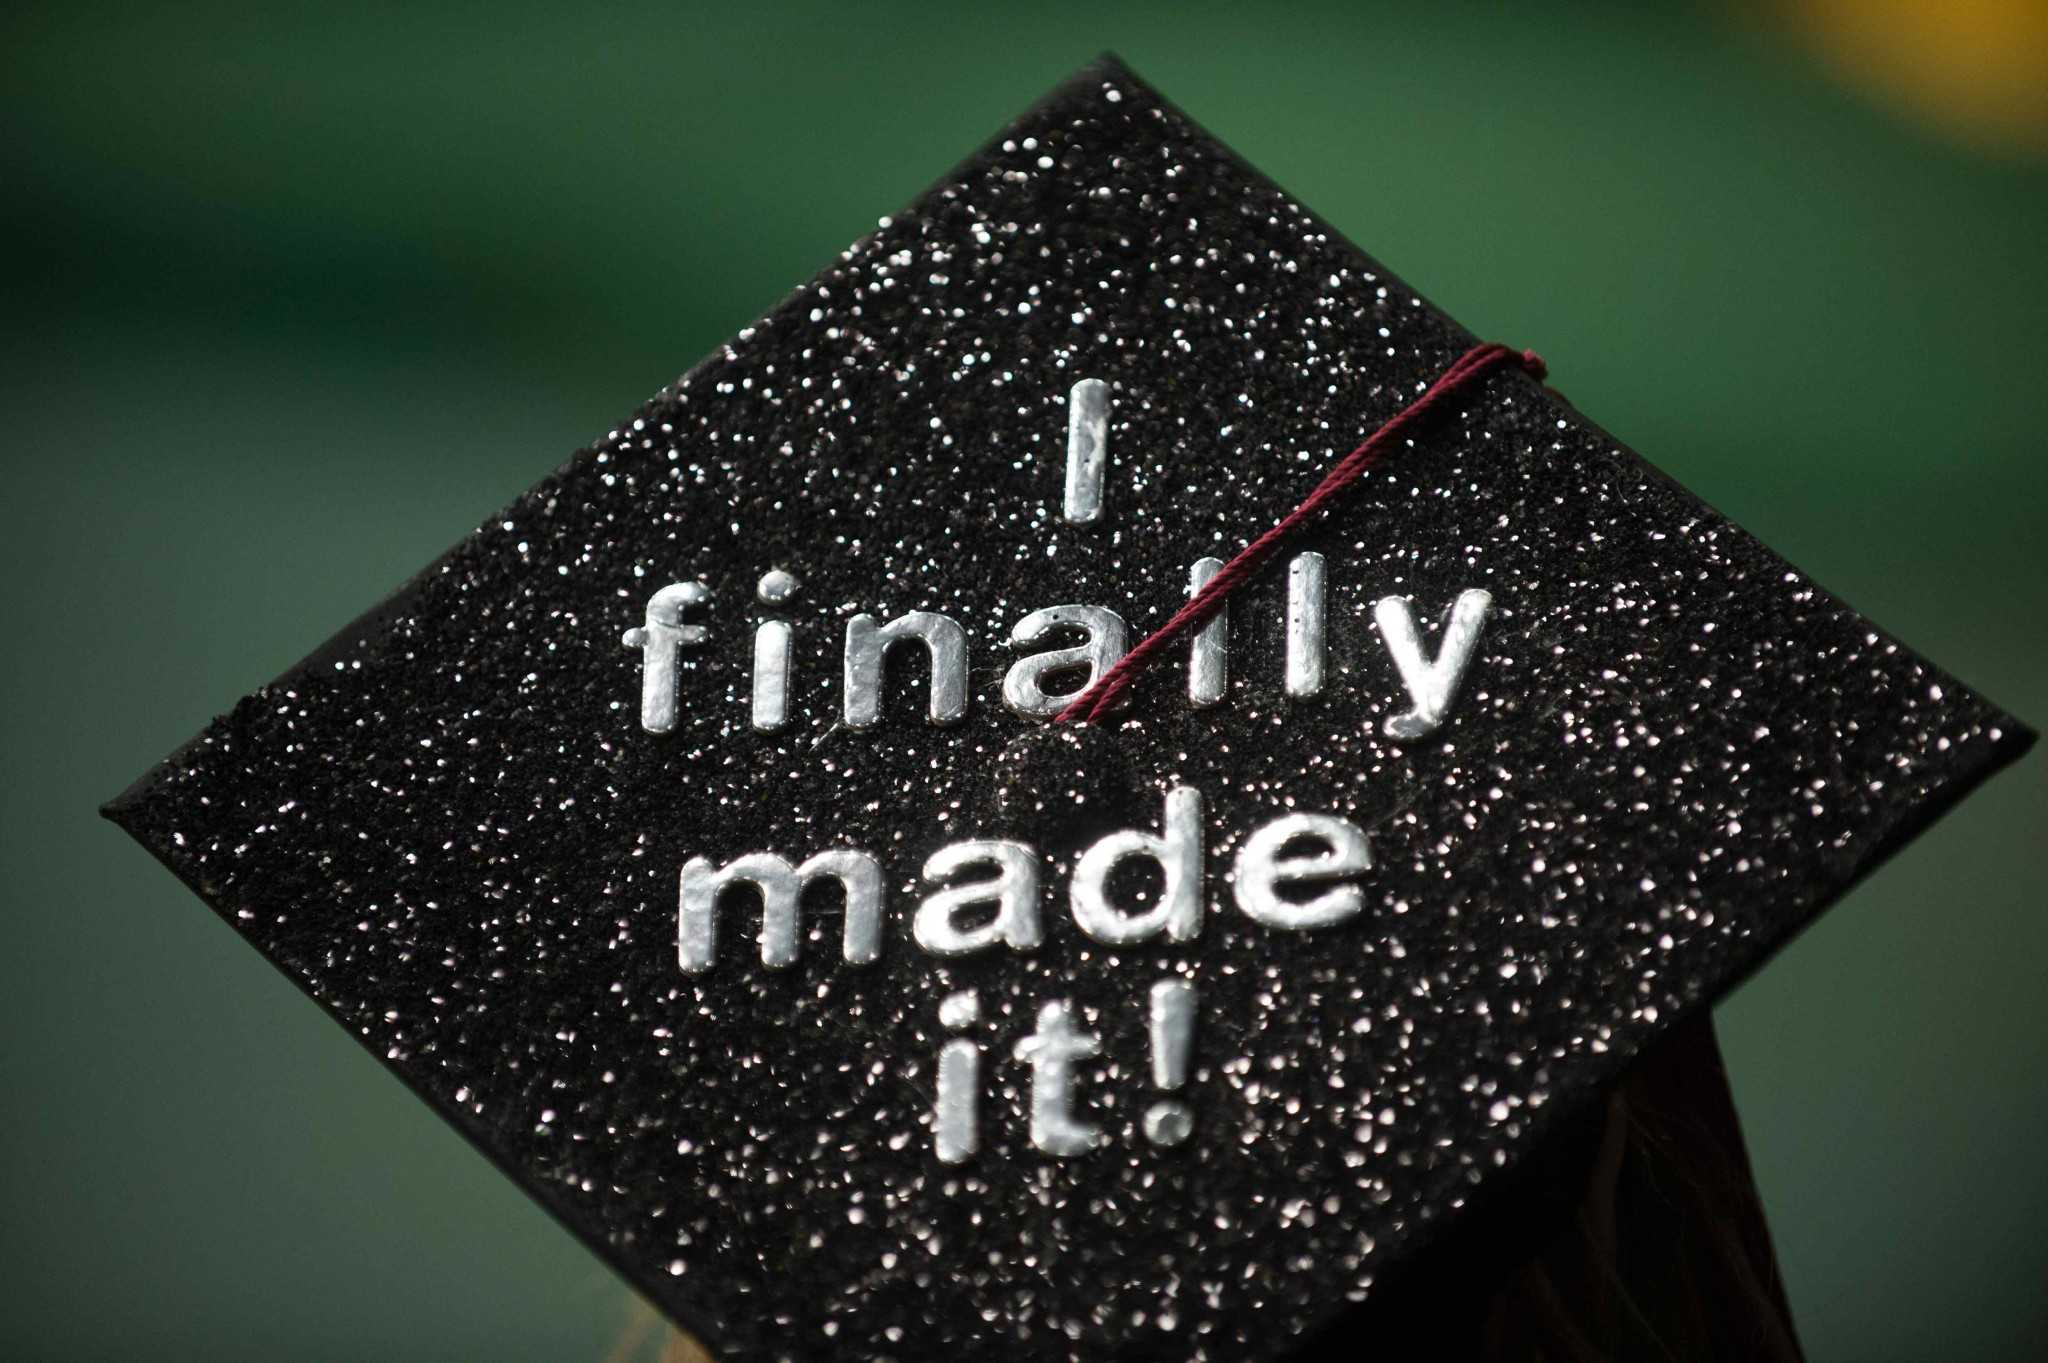 although csu discourages students from decorating their graduation caps you may want to decorate your - Graduation Caps Decorated